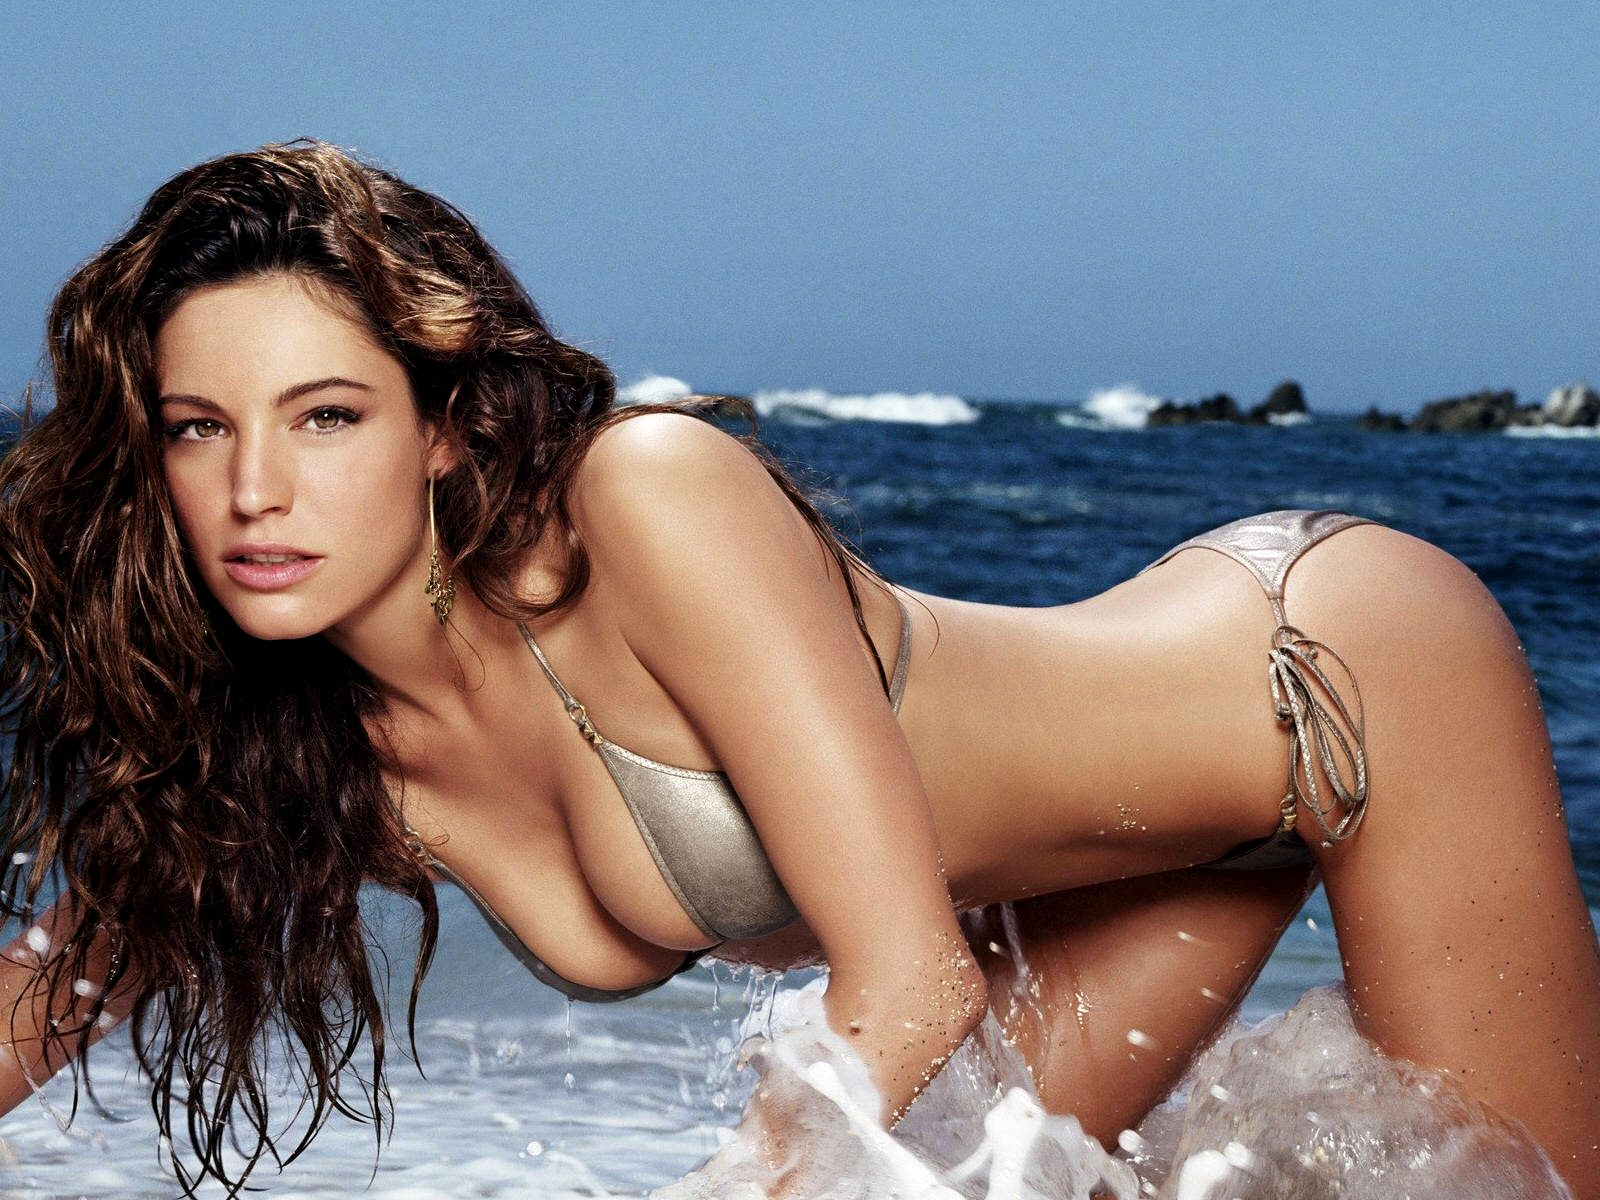 Kelly brook gallery that can